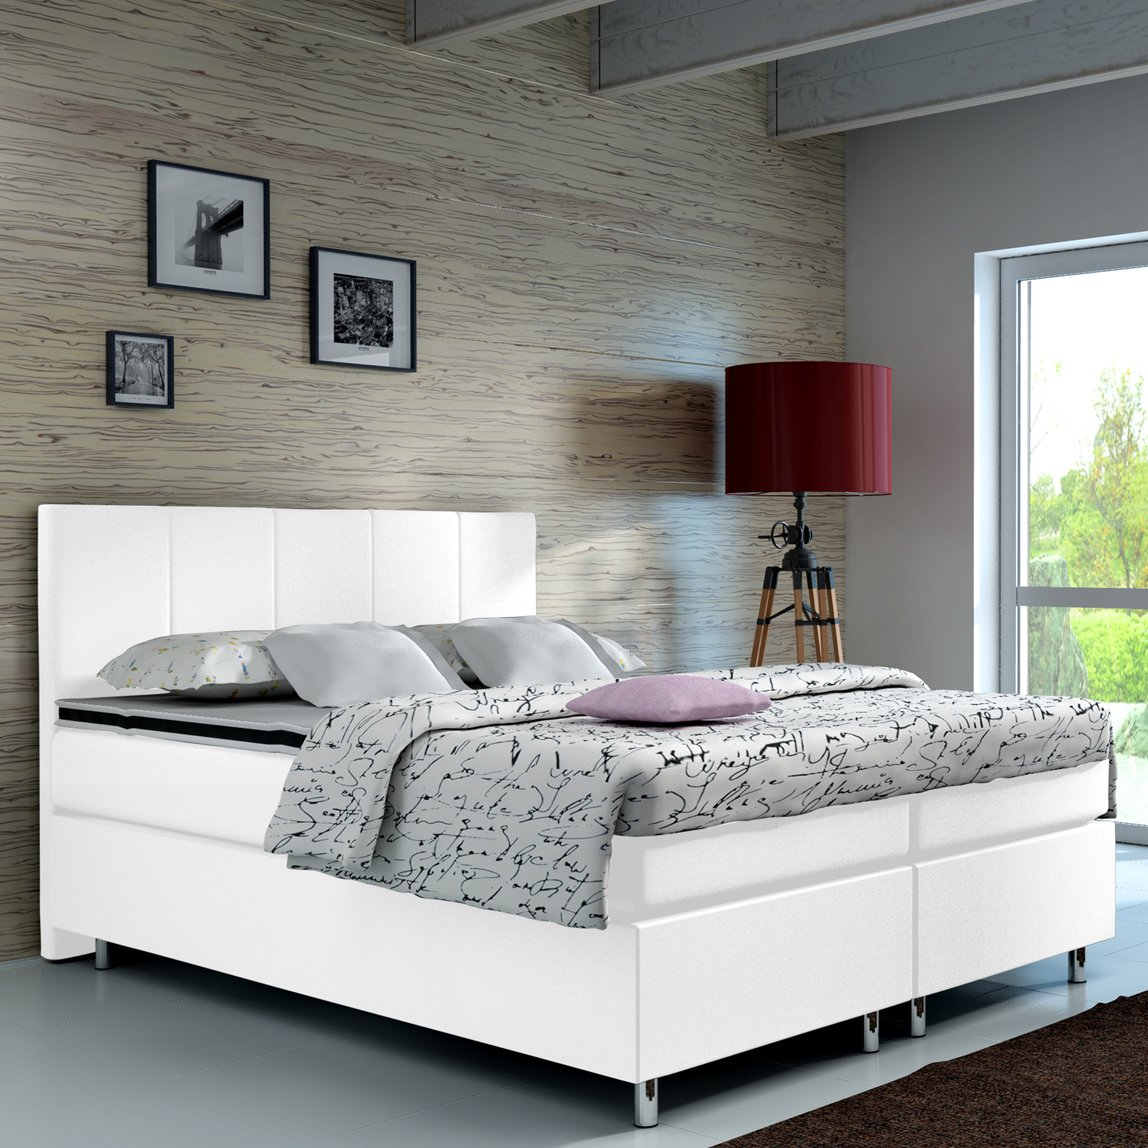 doppelbett 180x200 wei beautiful landhaus doppelbett pantina in pinie wei mit schubladen with. Black Bedroom Furniture Sets. Home Design Ideas